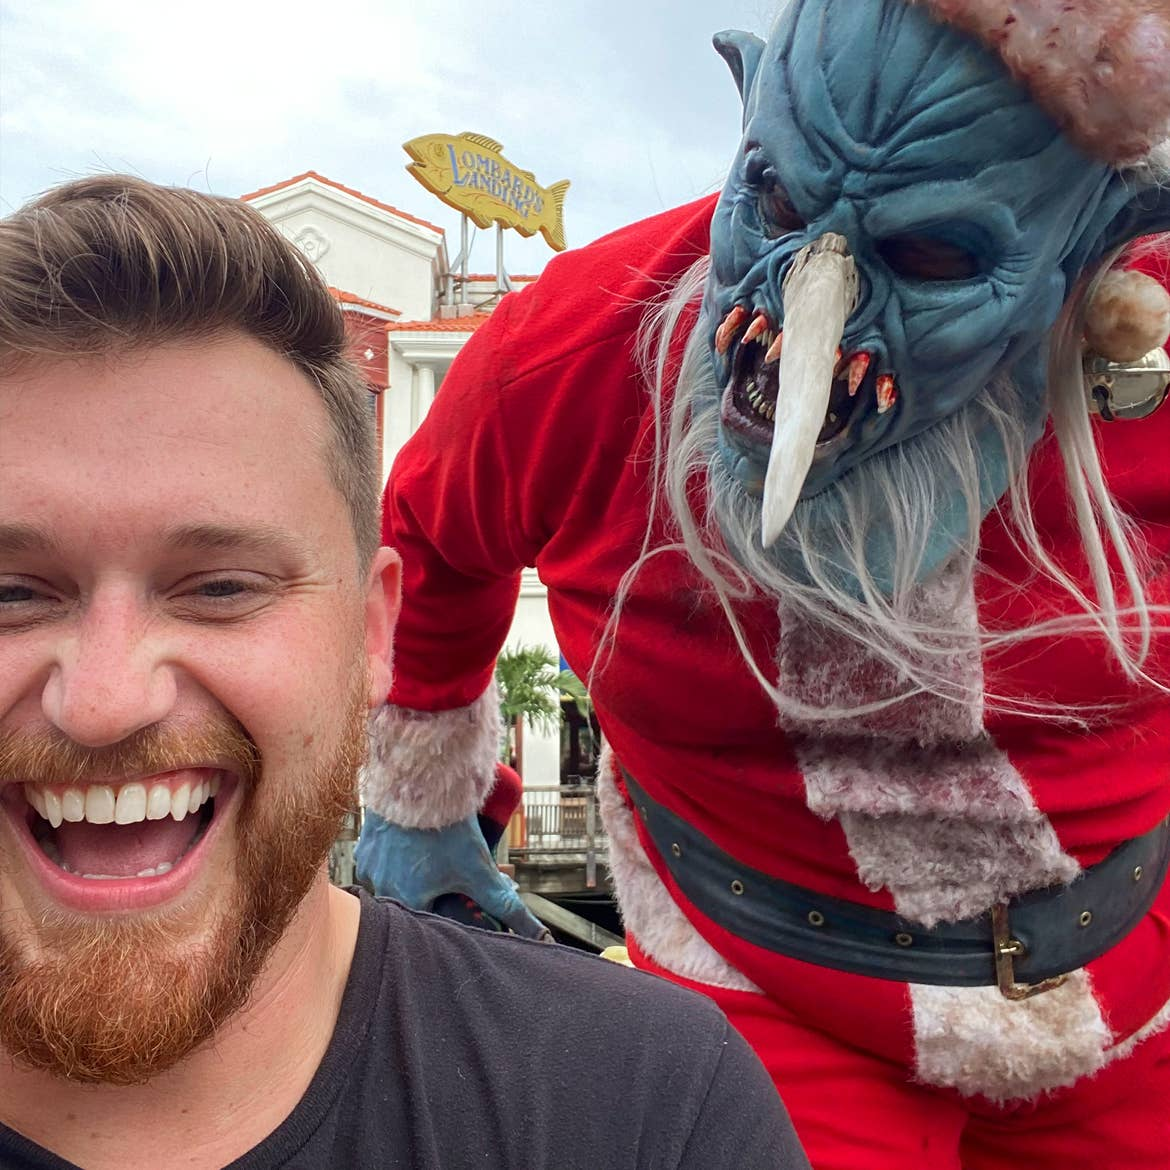 A man is confronted by a 'Demon Santa' performer.